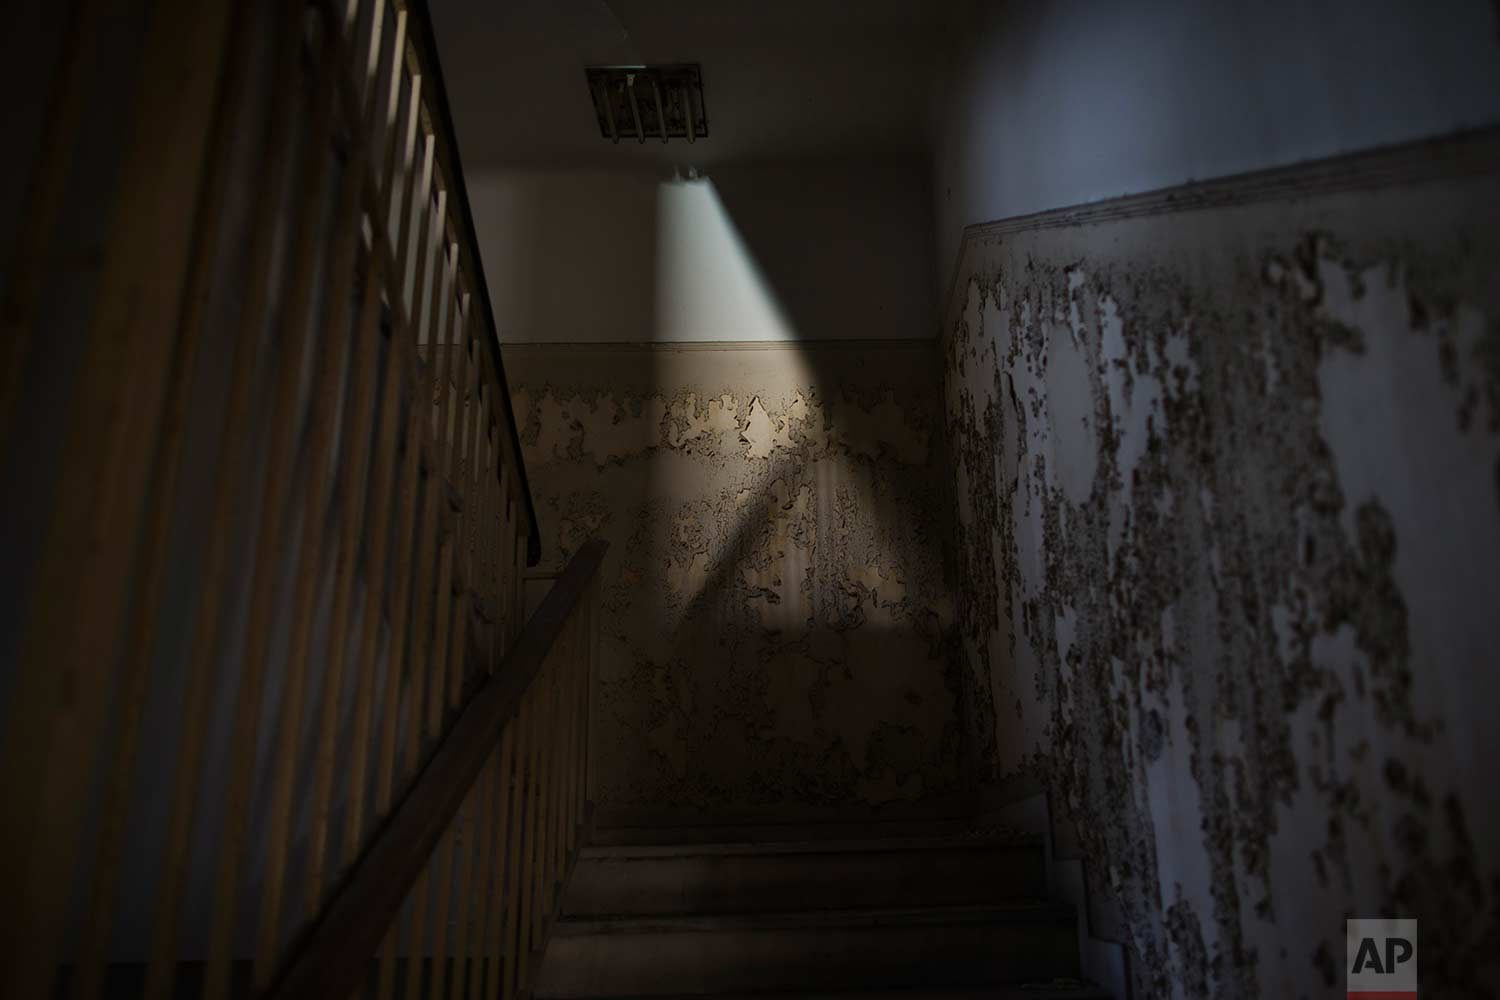 Peeling walls by a staircase inside a 7-story block off central Athens' gritty Omonia Square, that has been untenanted since a now-defunct farm cooperative fund left years ago. (AP Photo/Petros Giannakouris)